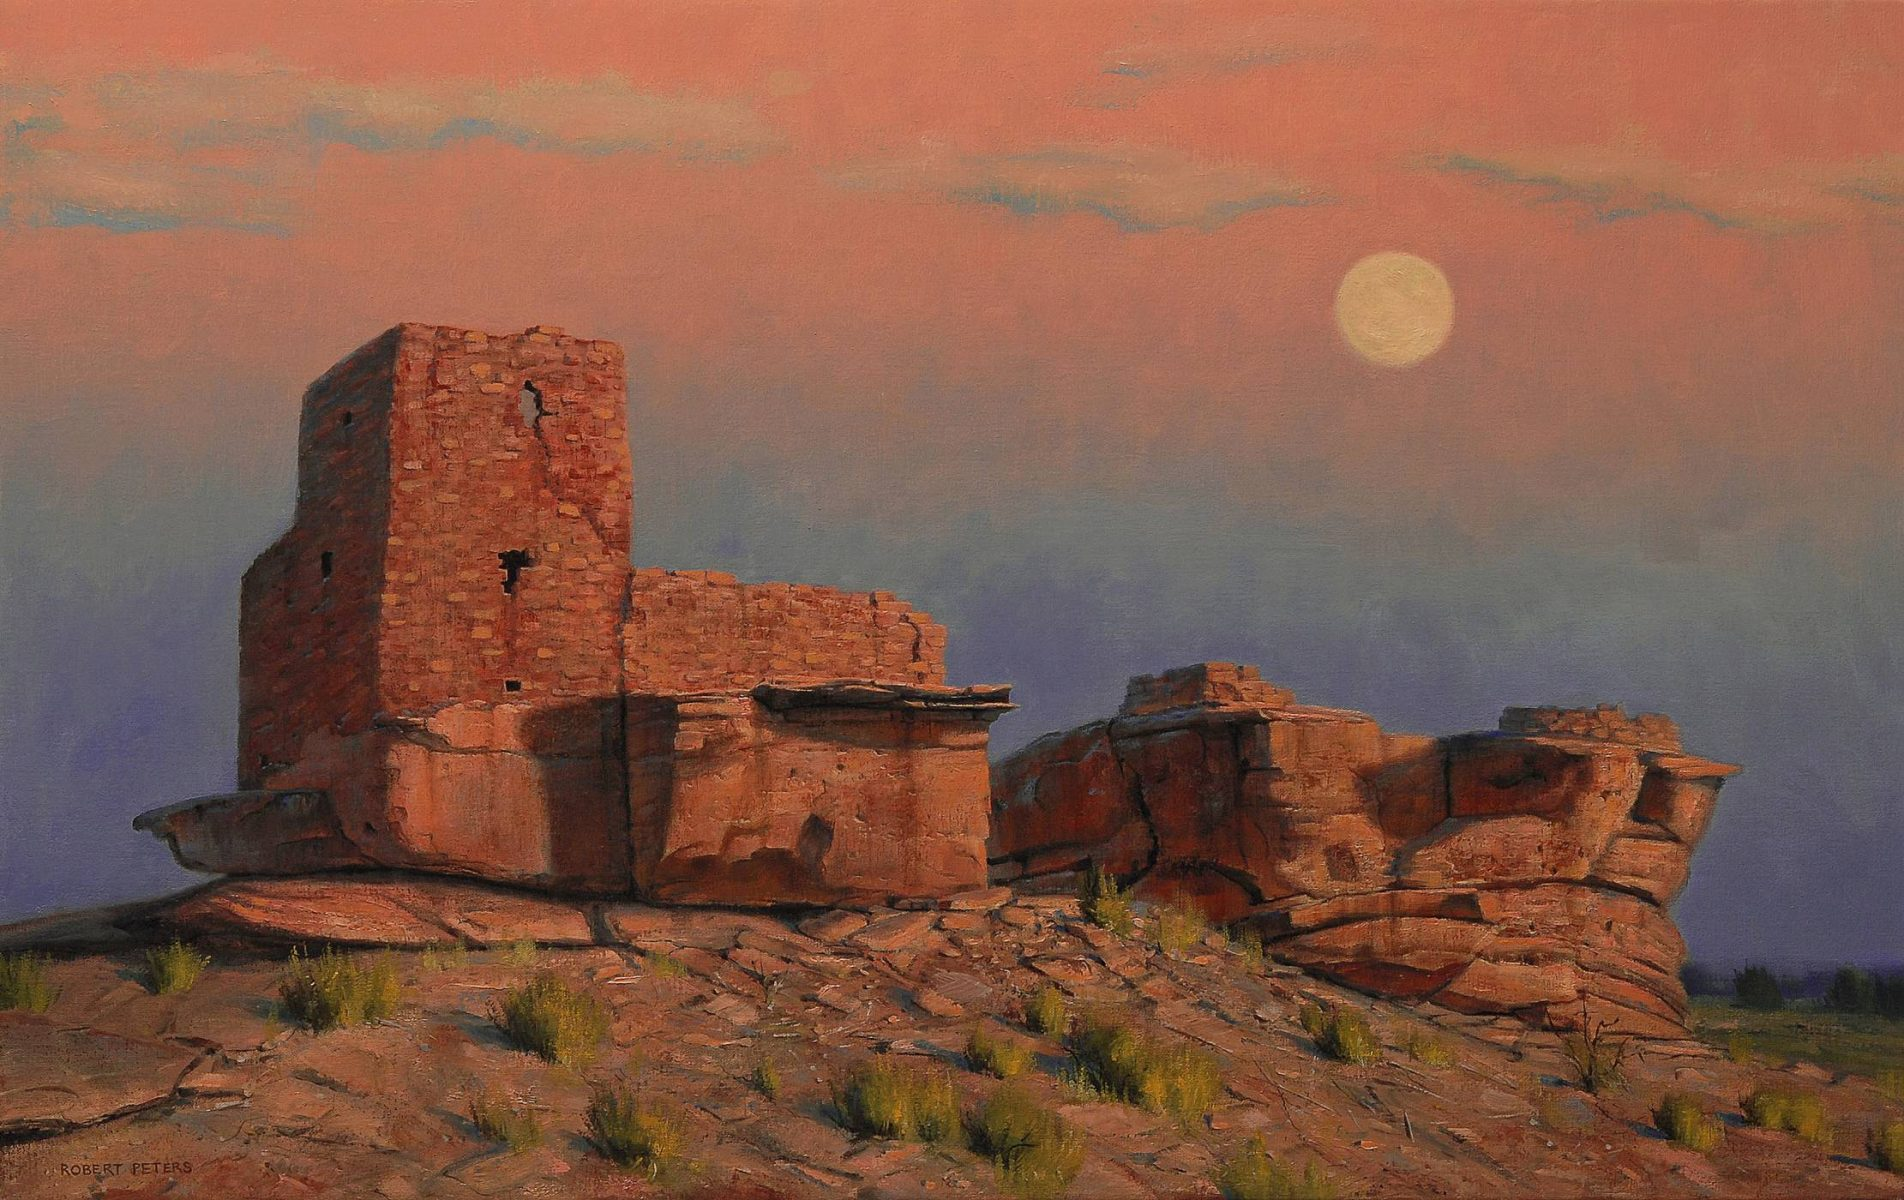 Sinagua Moon by Robert Peters